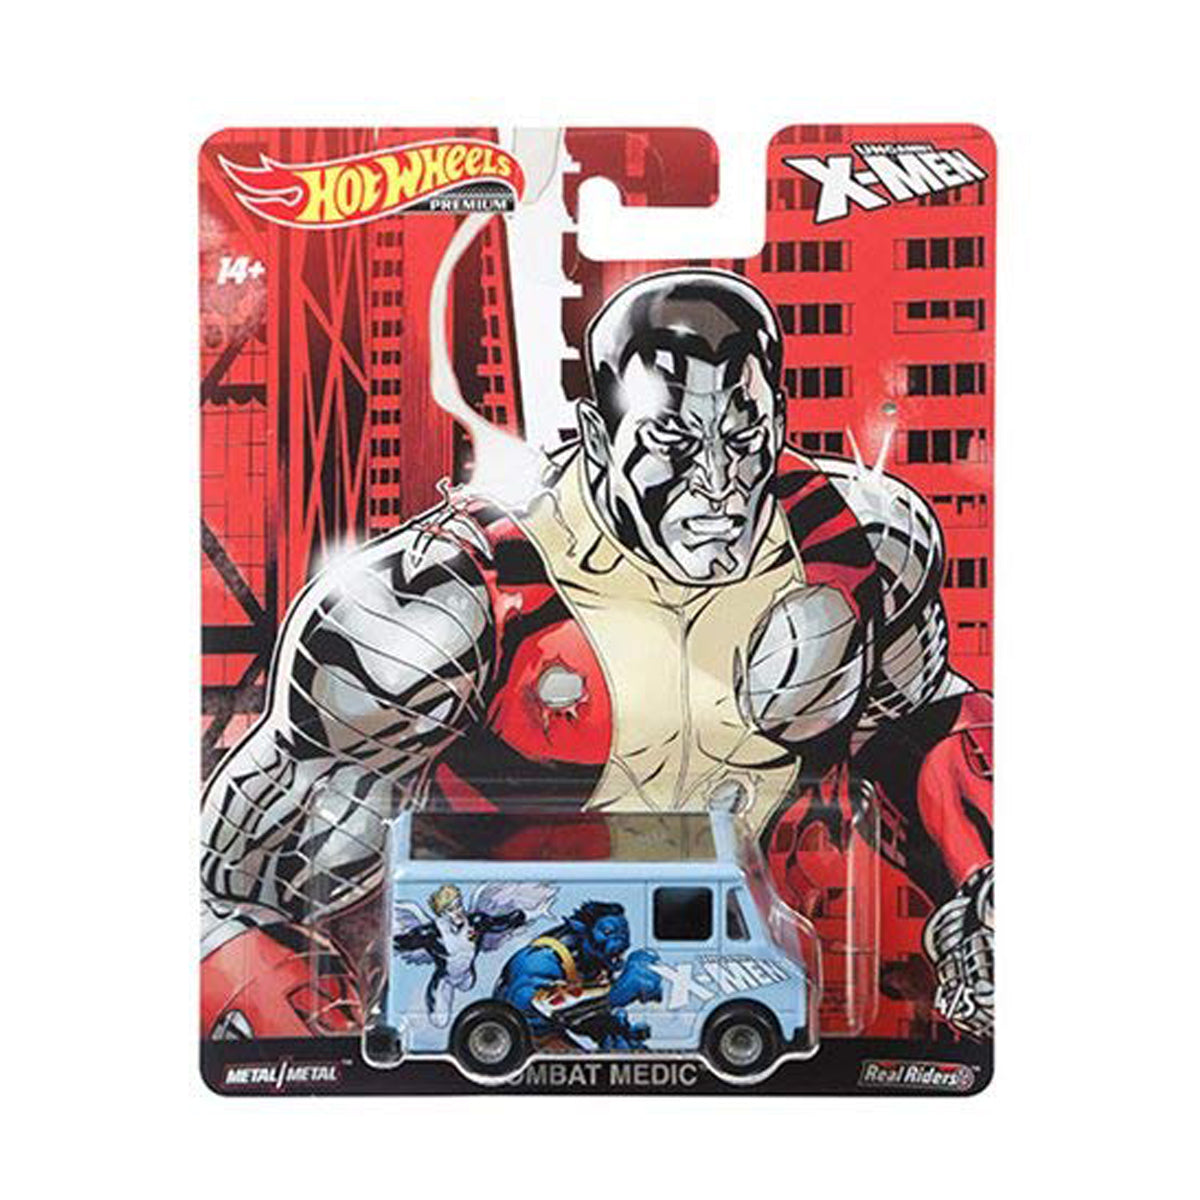 HOT WHEELS POP CULTURE X-MEN - COMBAT MEDIC